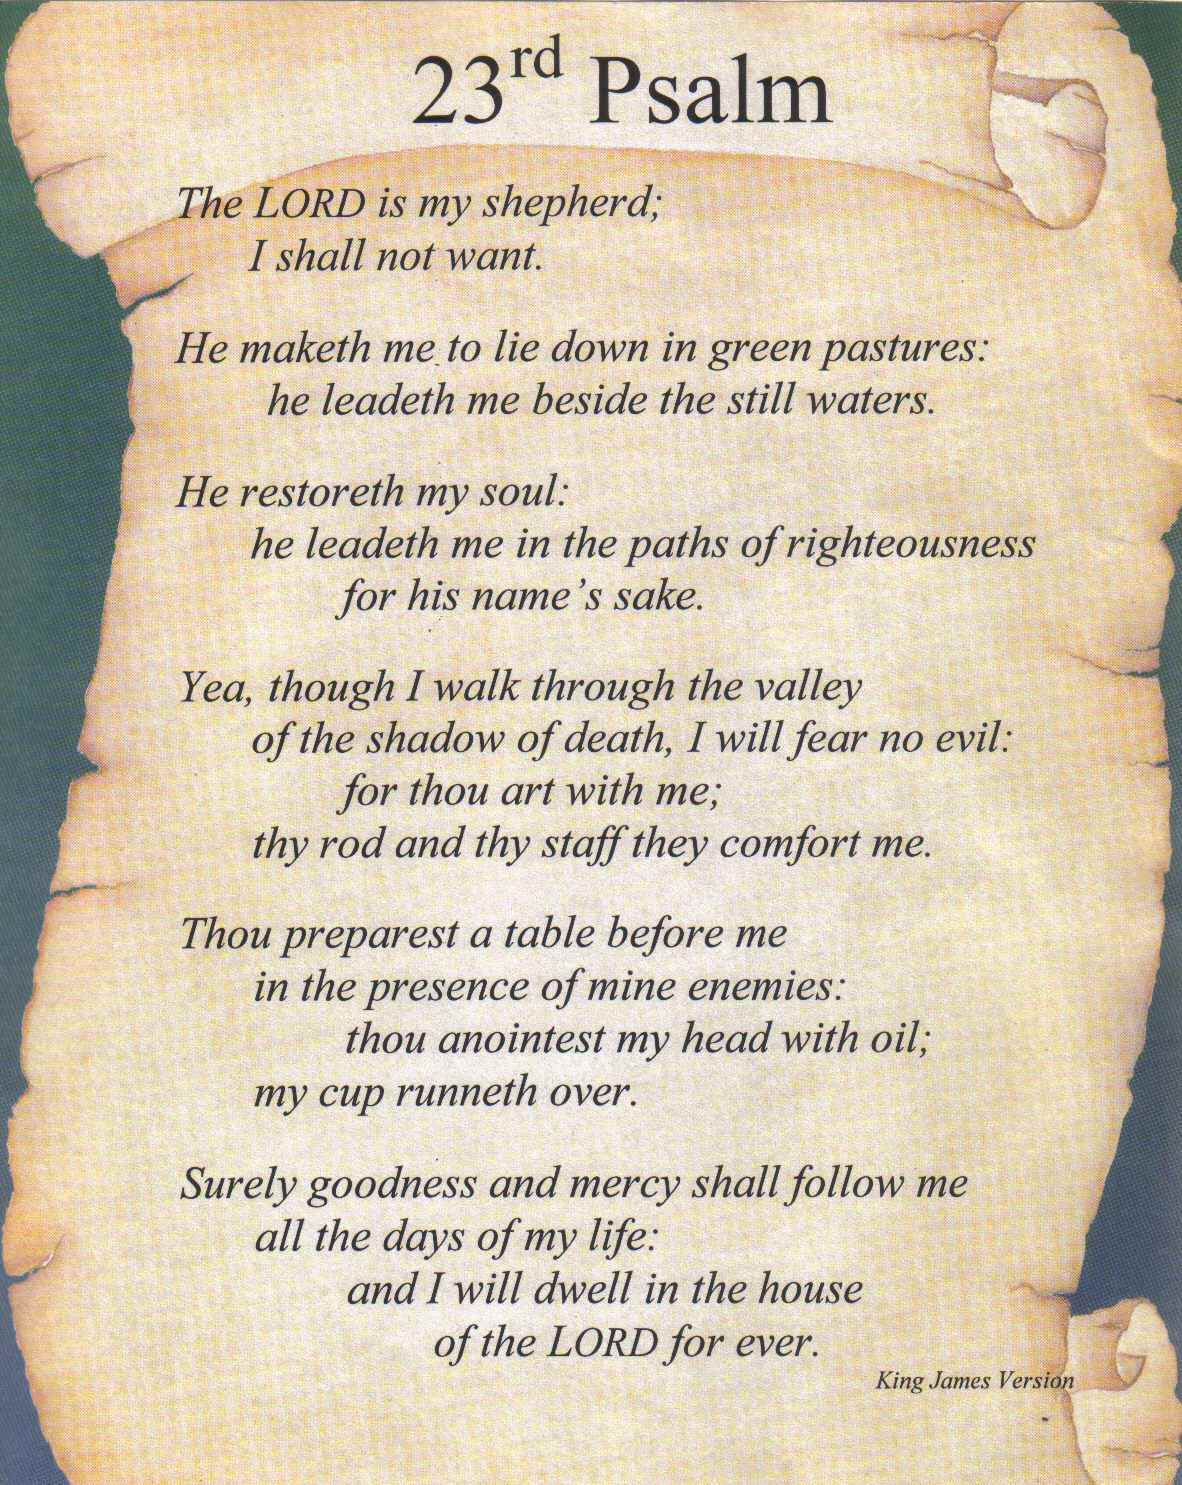 psalm 23 is a part of psalms 23 kjv pictures gallery to see this psalm 1182x1485